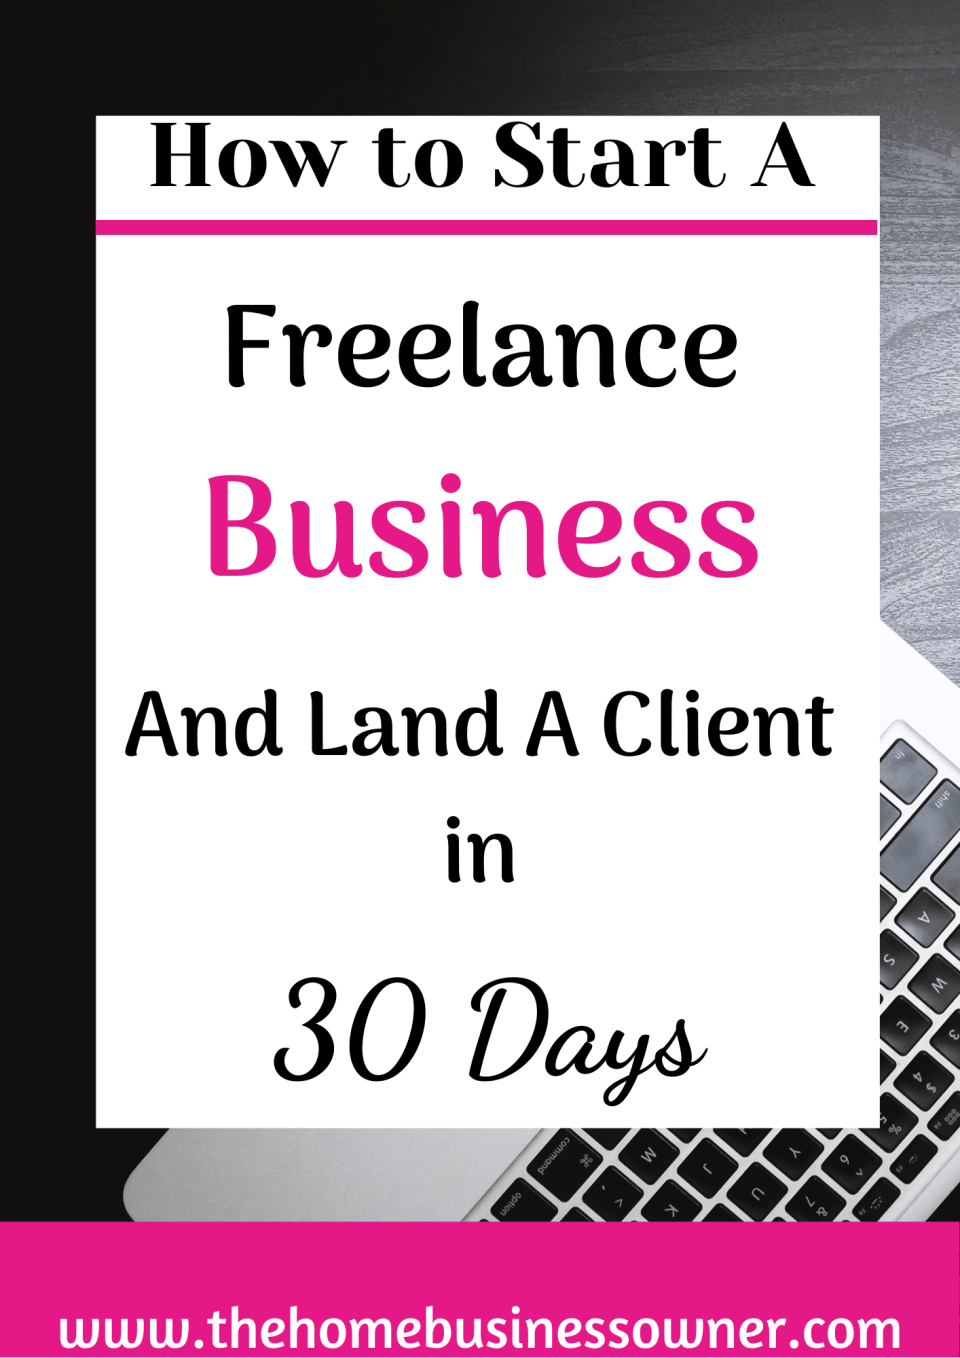 How to go freelance and land a client in 30 days.